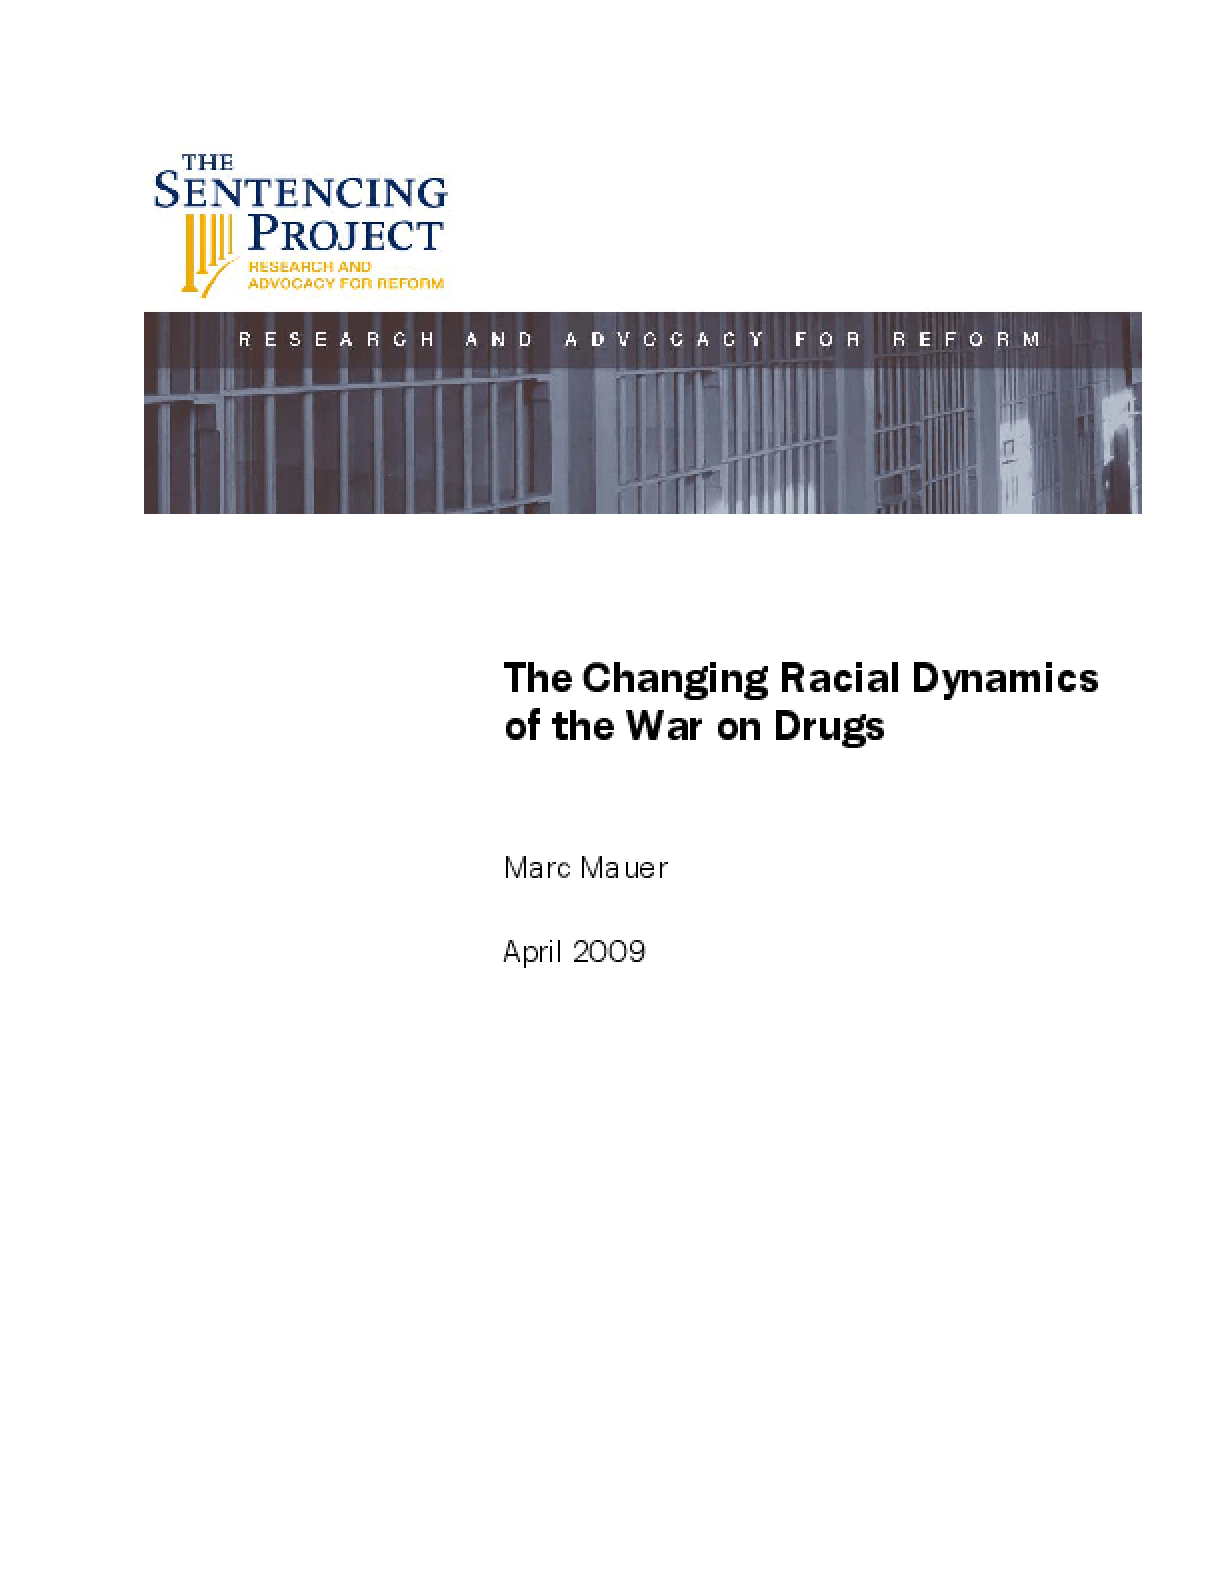 The Changing Racial Dynamics of the War on Drugs